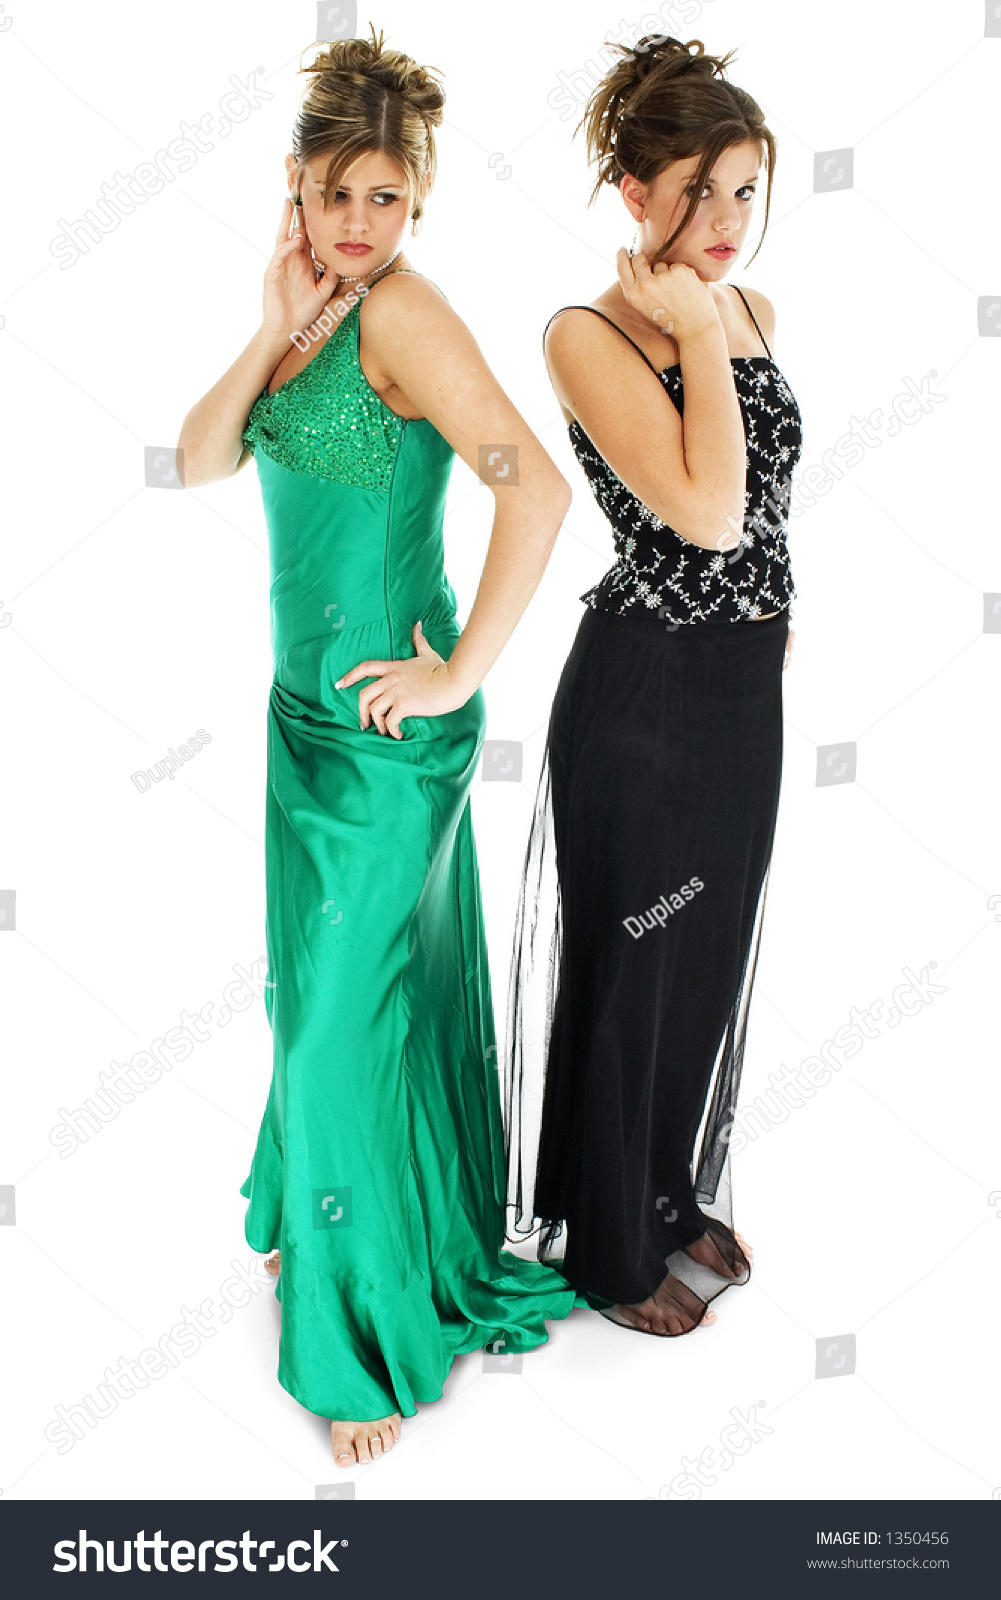 Two Teen Girls Formal Dresses Barefoot Stock Photo (Download Now ...